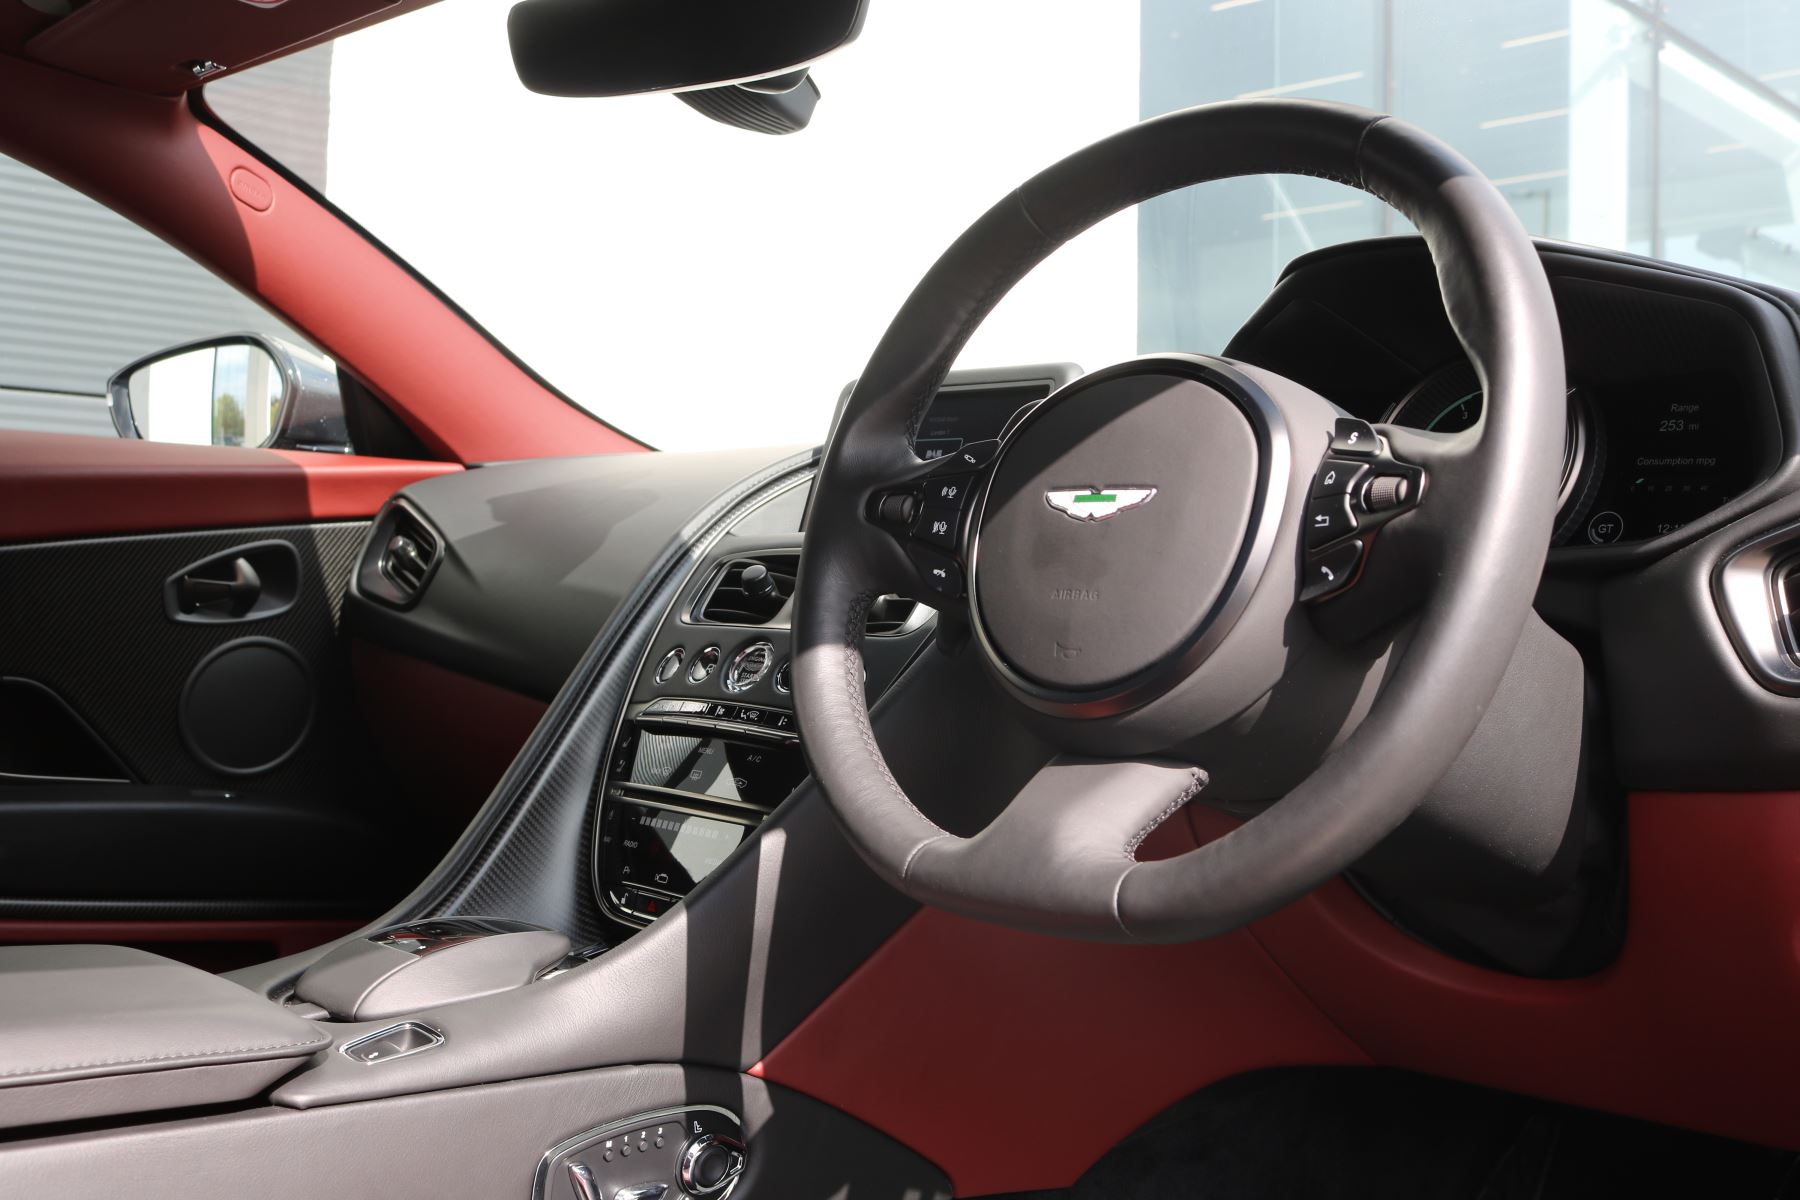 Aston Martin DB11 V12 AMR 2dr Touchtronic FREE SERVICING  image 19